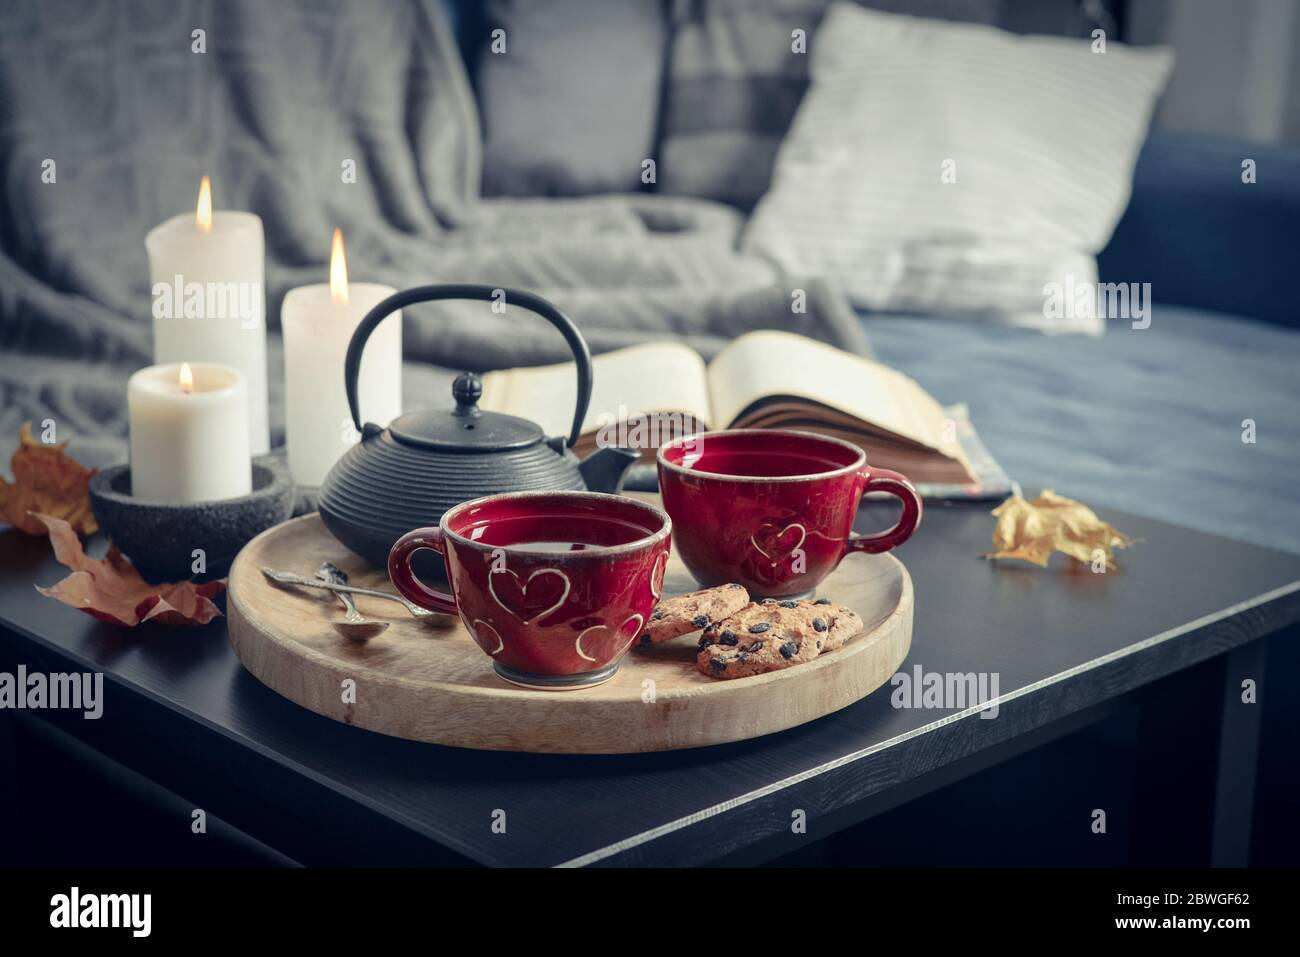 Two Cups Of Tea On A Serving Tray On Coffee Table Breakfast Over Sofa In Morning Sunlight Cozy Autumn Or Winter Concept Stock Photo Alamy